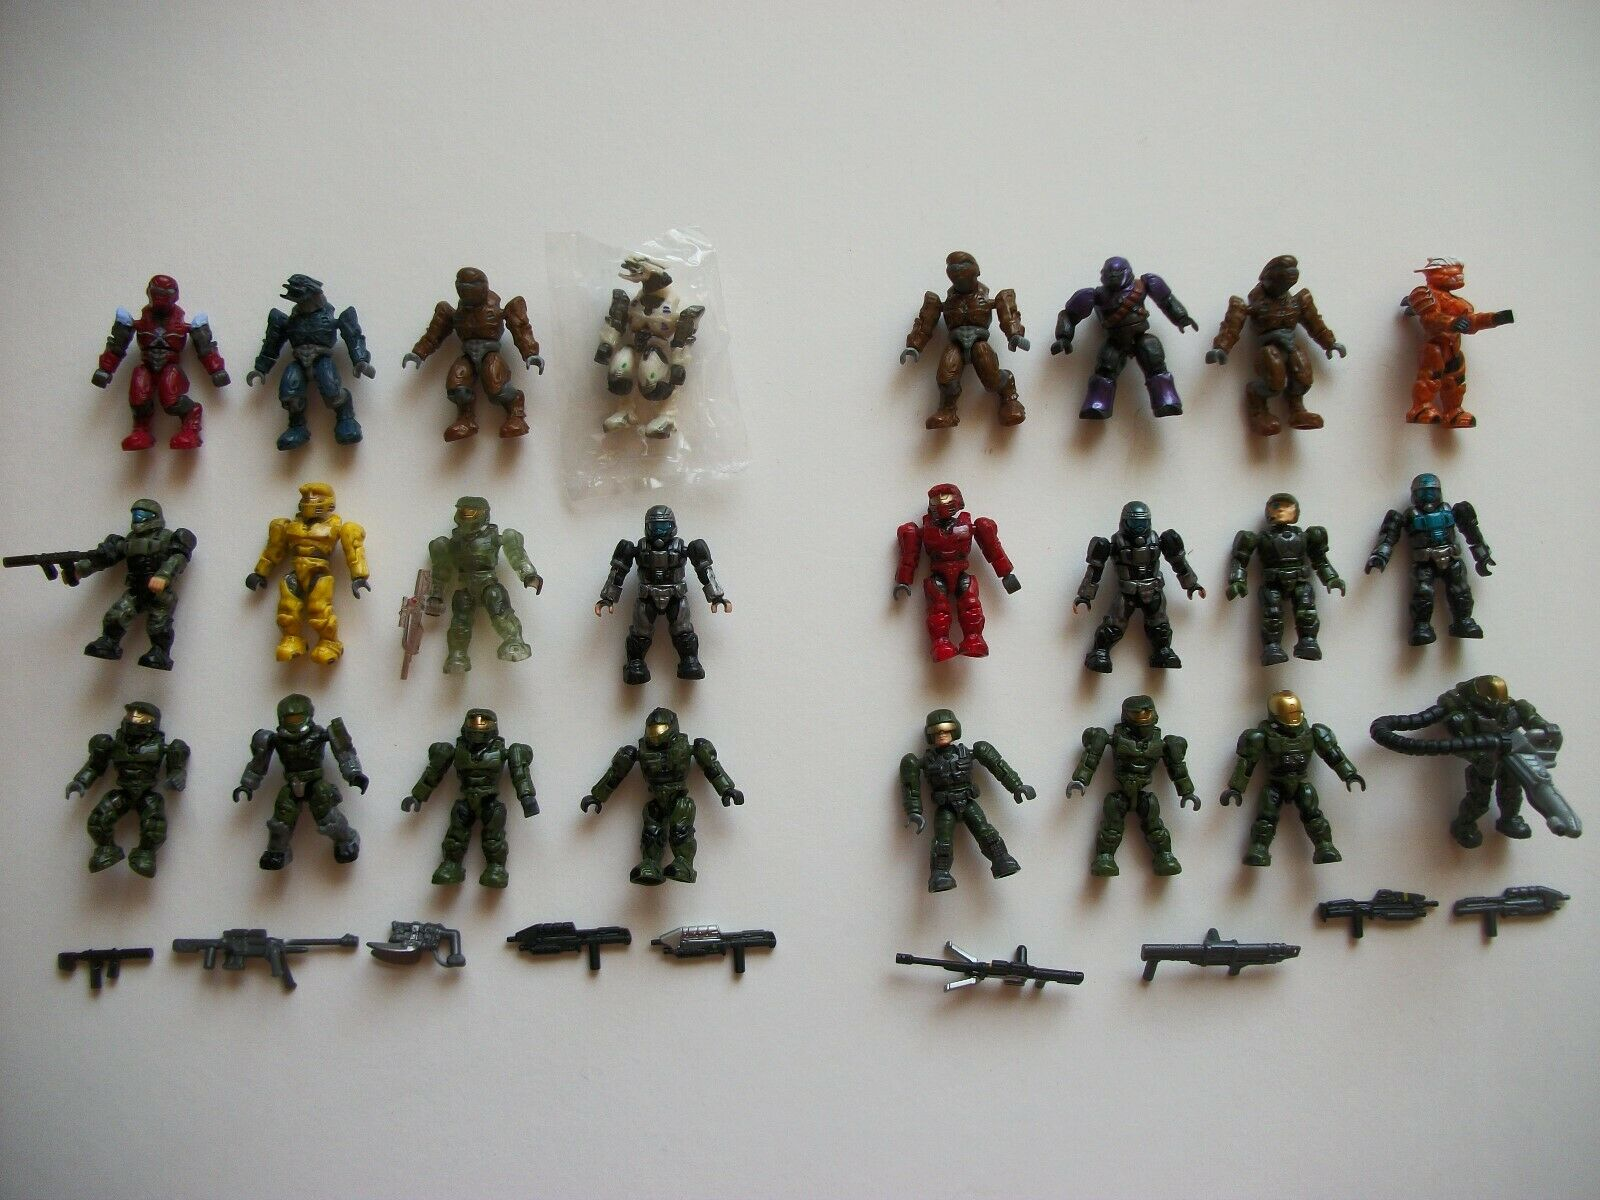 Mega Bloks Halo Figures and weapons